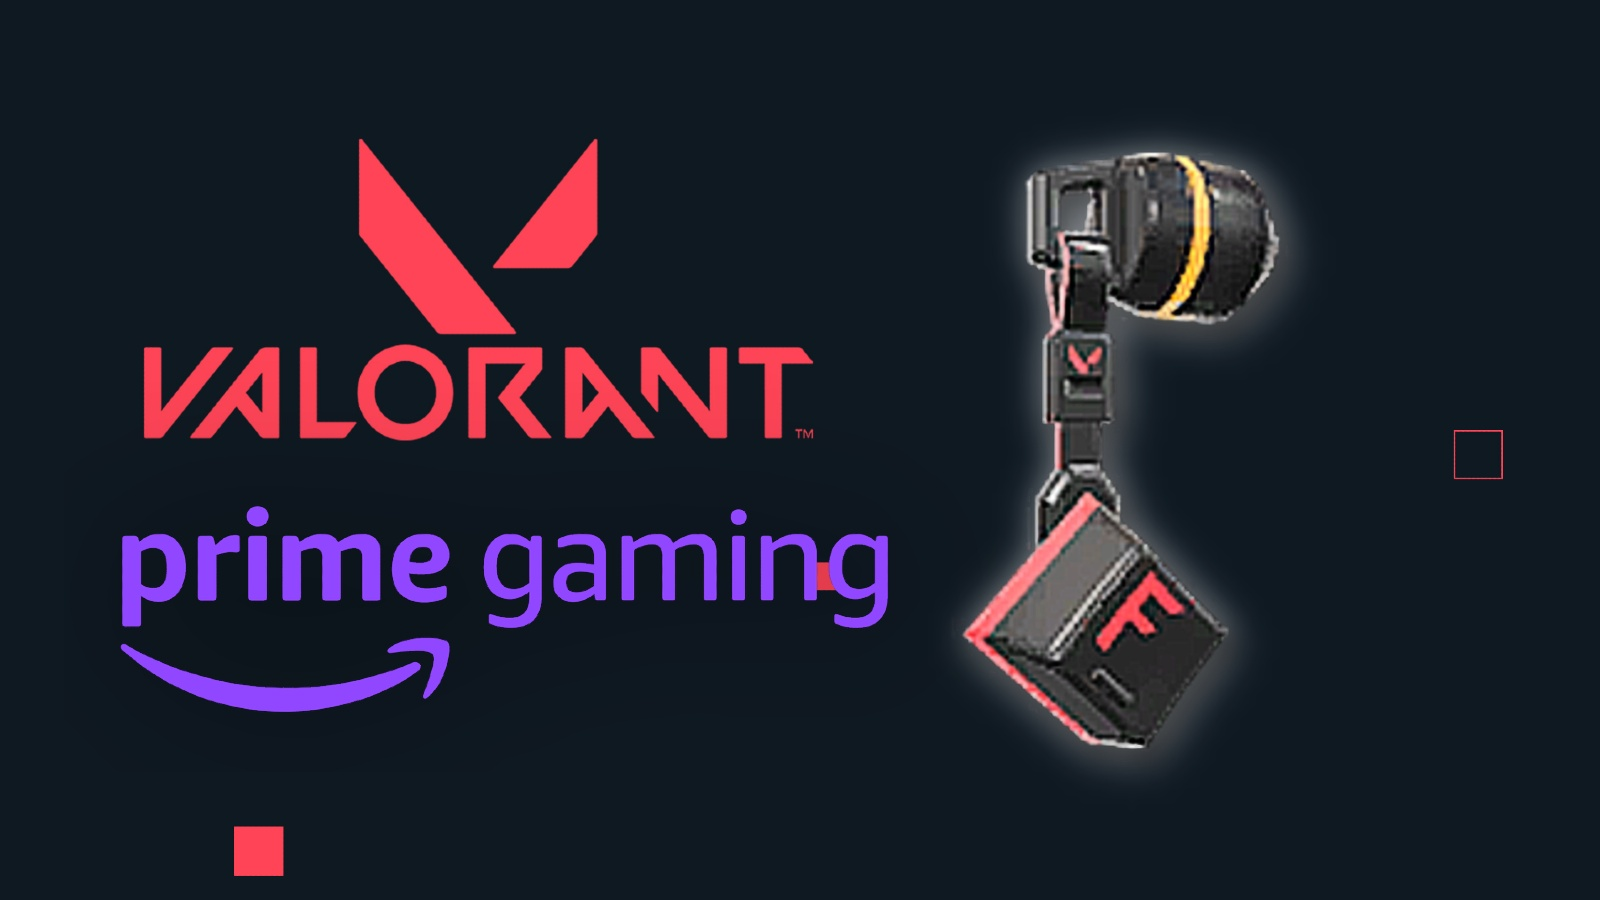 Valorant Twitch Prime Gaming Pay Respects Gun Buddy